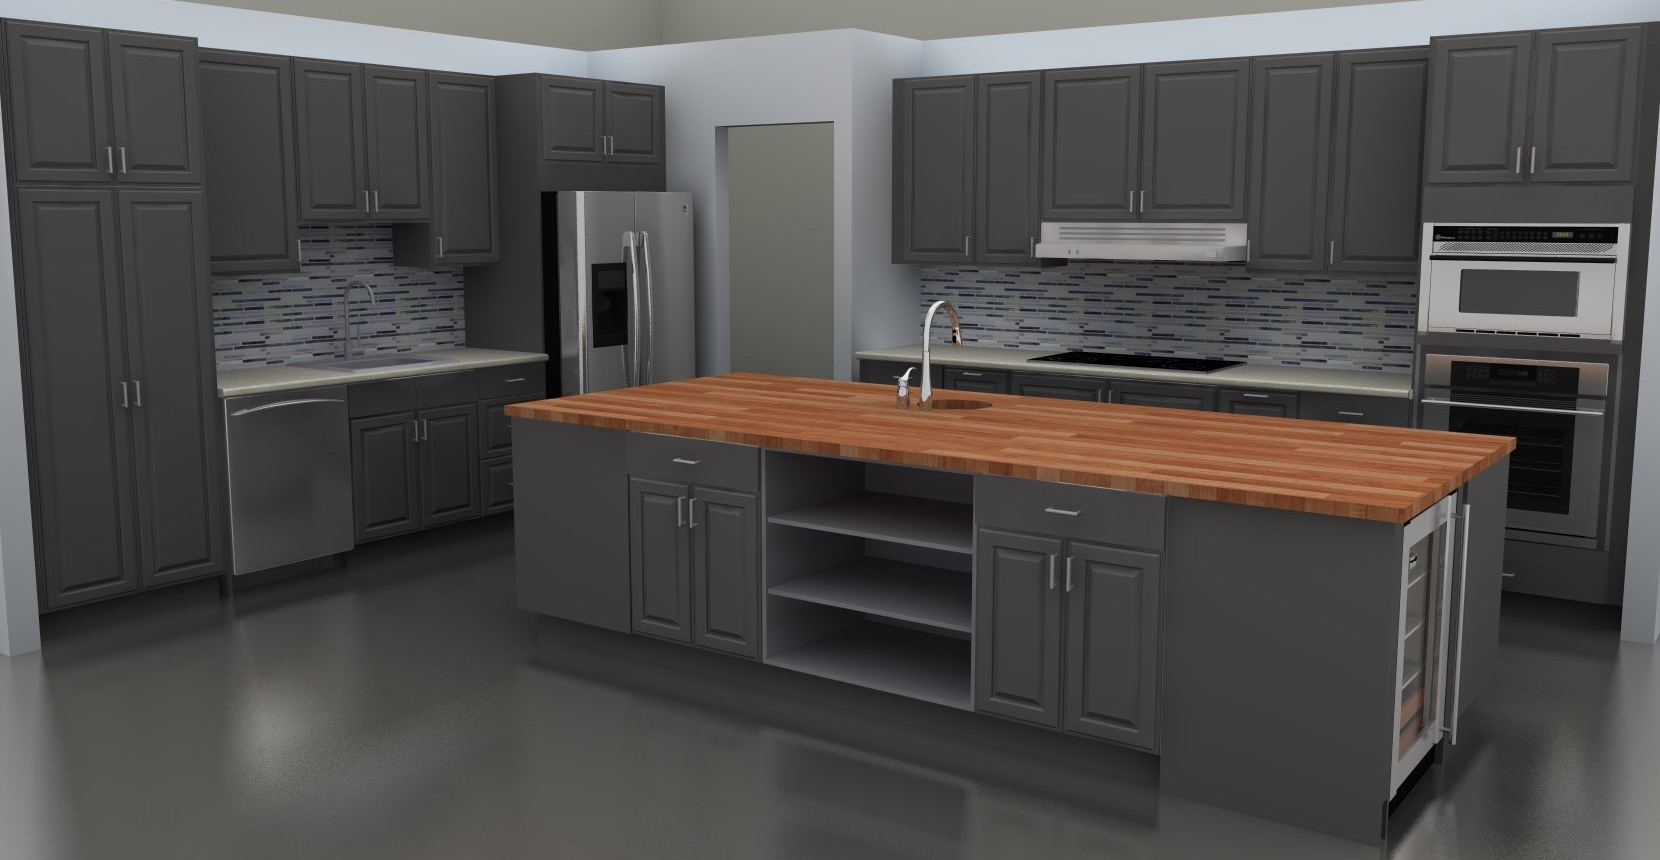 Stylish LIDINGO Gray Doors For A New IKEA Kitchen